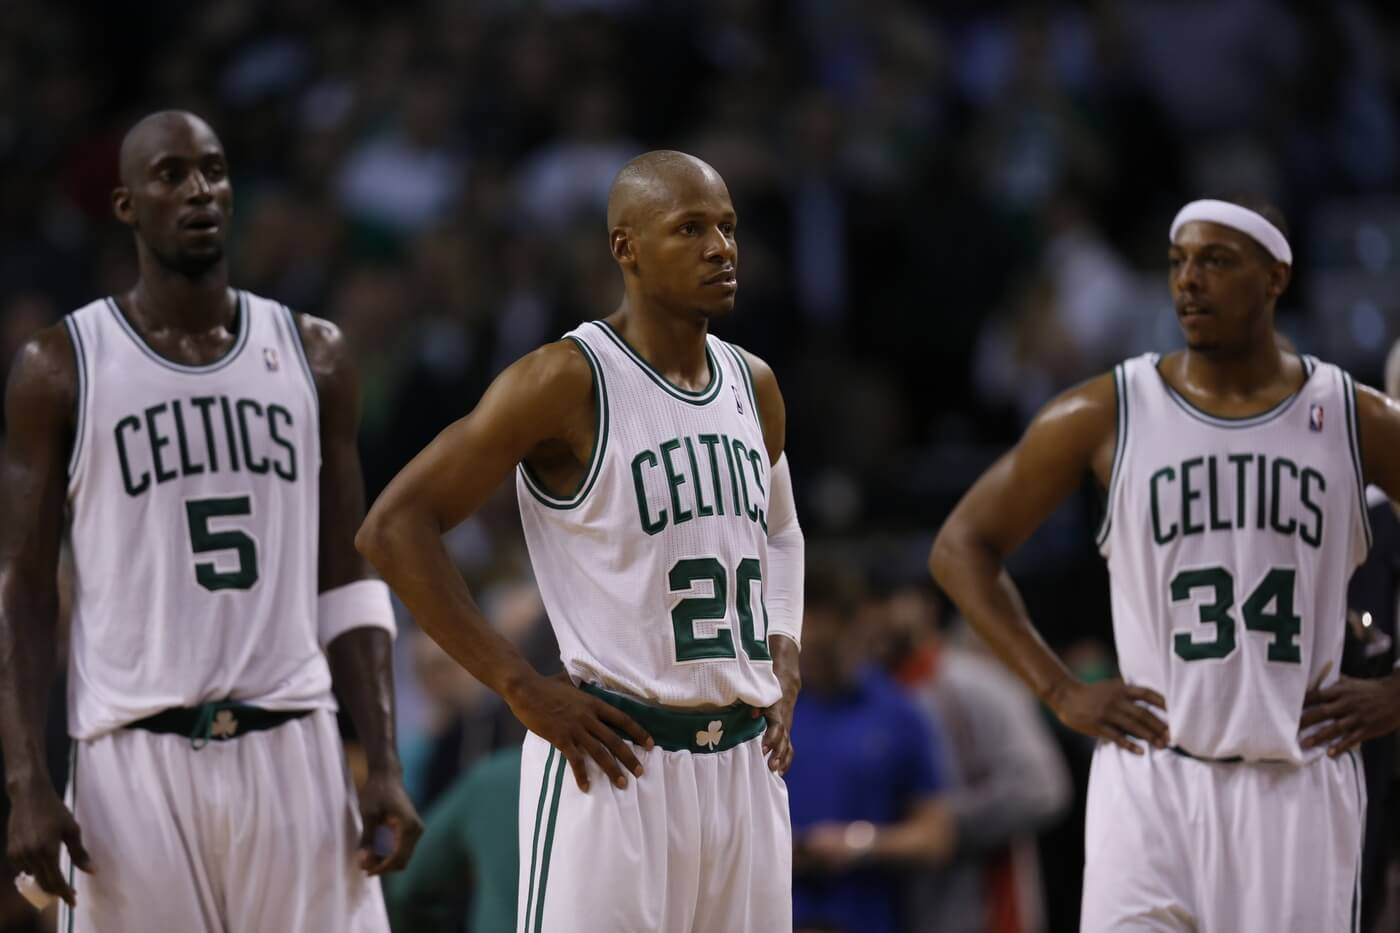 May 14, 2012; Boston, MA, USA; Boston Celtics shooting guard Ray Allen (20), small forward Paul Pierce (34) and power forward Kevin Garnett (5) react as they take on the Philadelphia 76ers during the fourth quarter in game two of the Eastern Conference semifinals of the 2012 NBA Playoffs at TD Garden. The Philadelphia 76ers defeated the Boston Celtics 82-81.